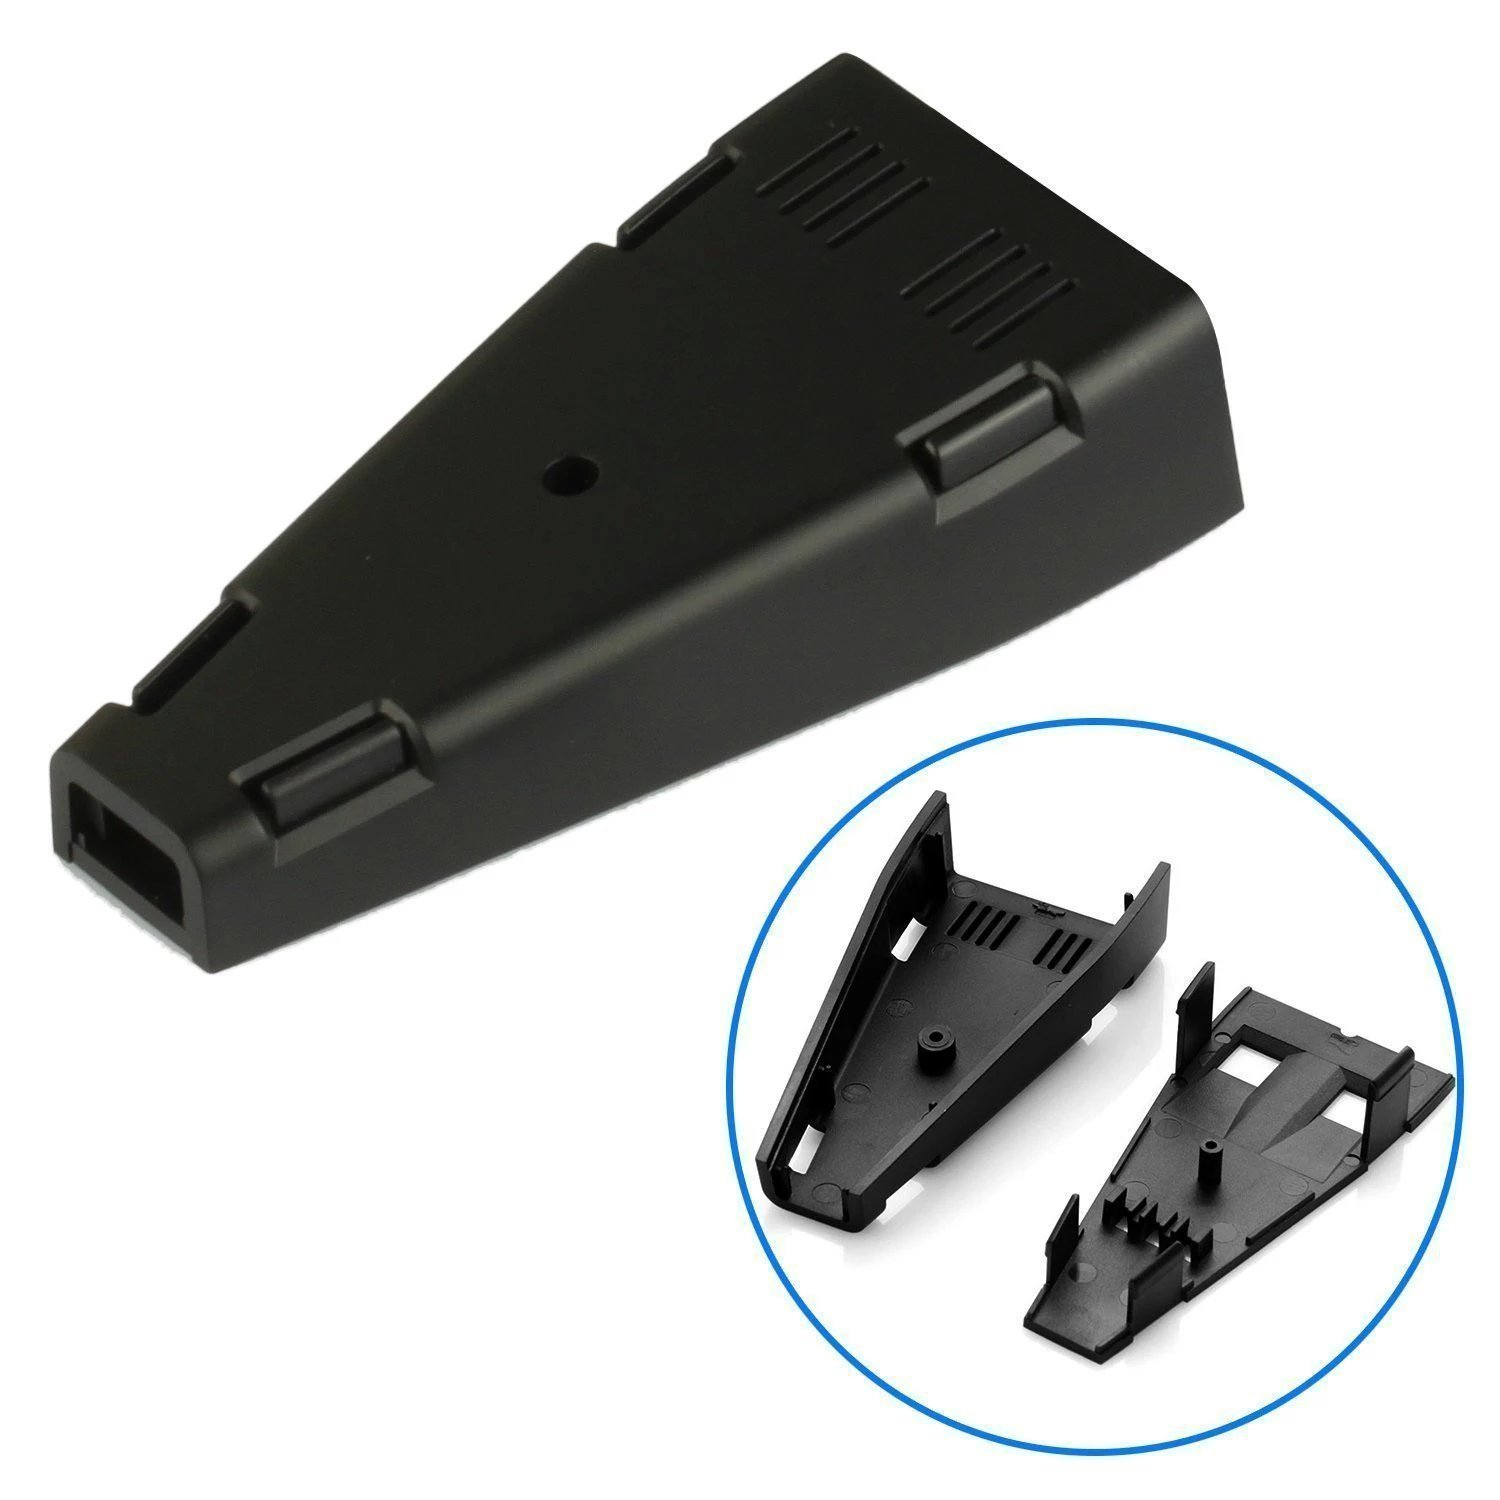 Cheap Cord Cable Cover, find Cord Cable Cover deals on line at ...